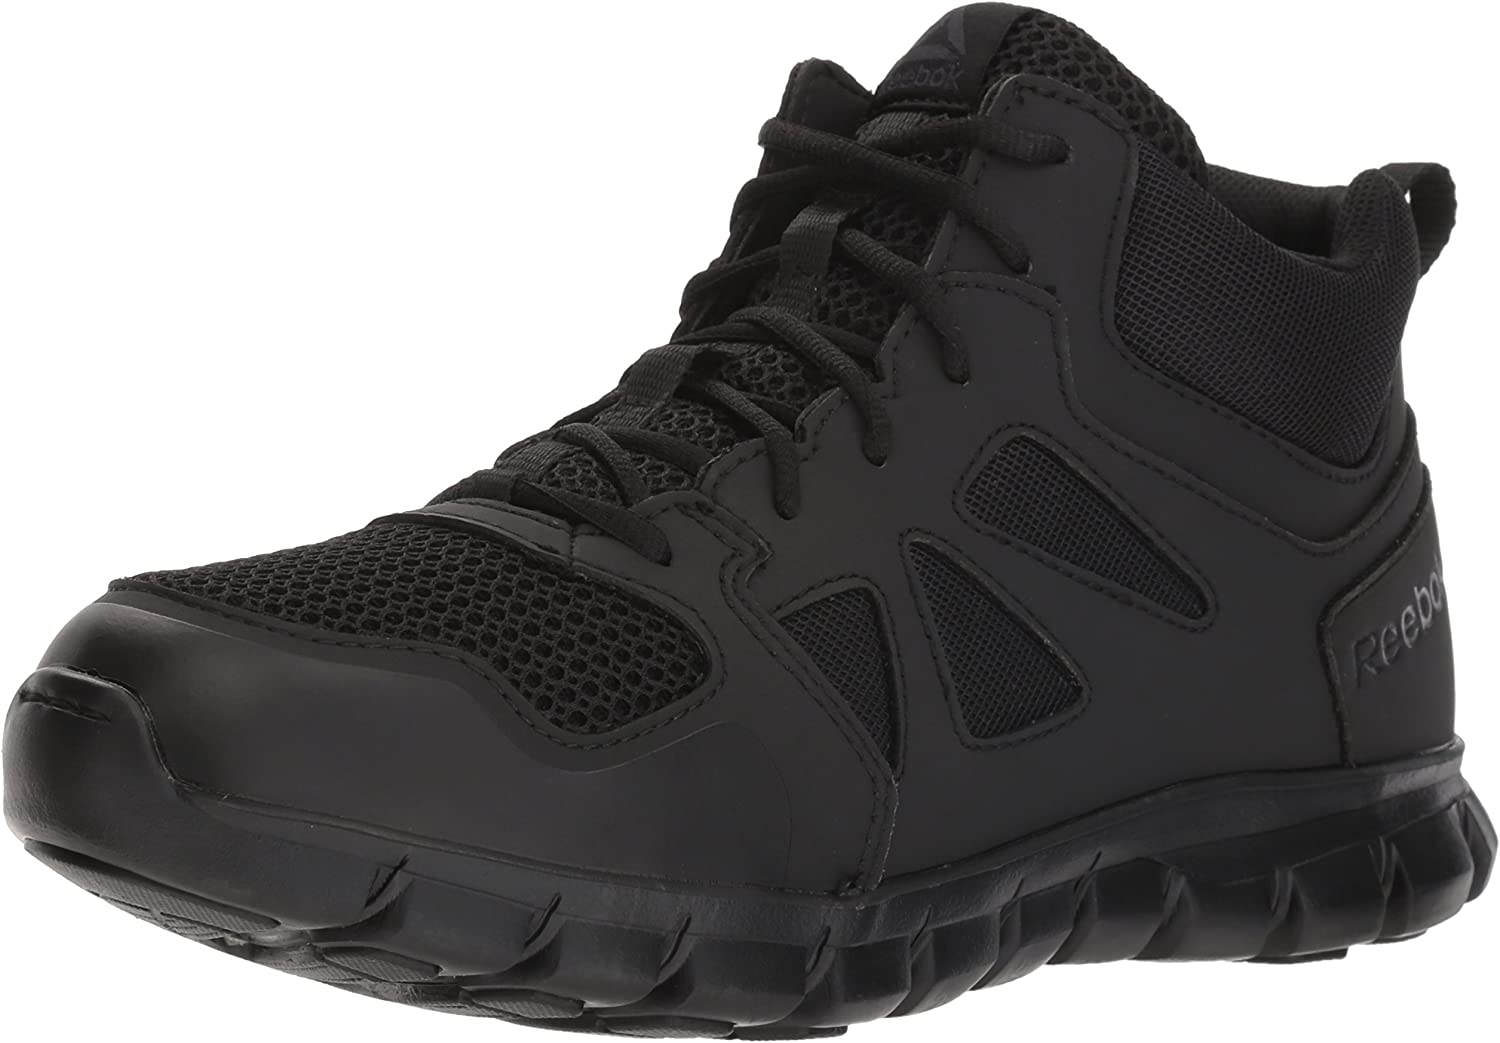 Reebok Men's Sublite Cushion Tactical Rb8405 Military & Tactical Boot